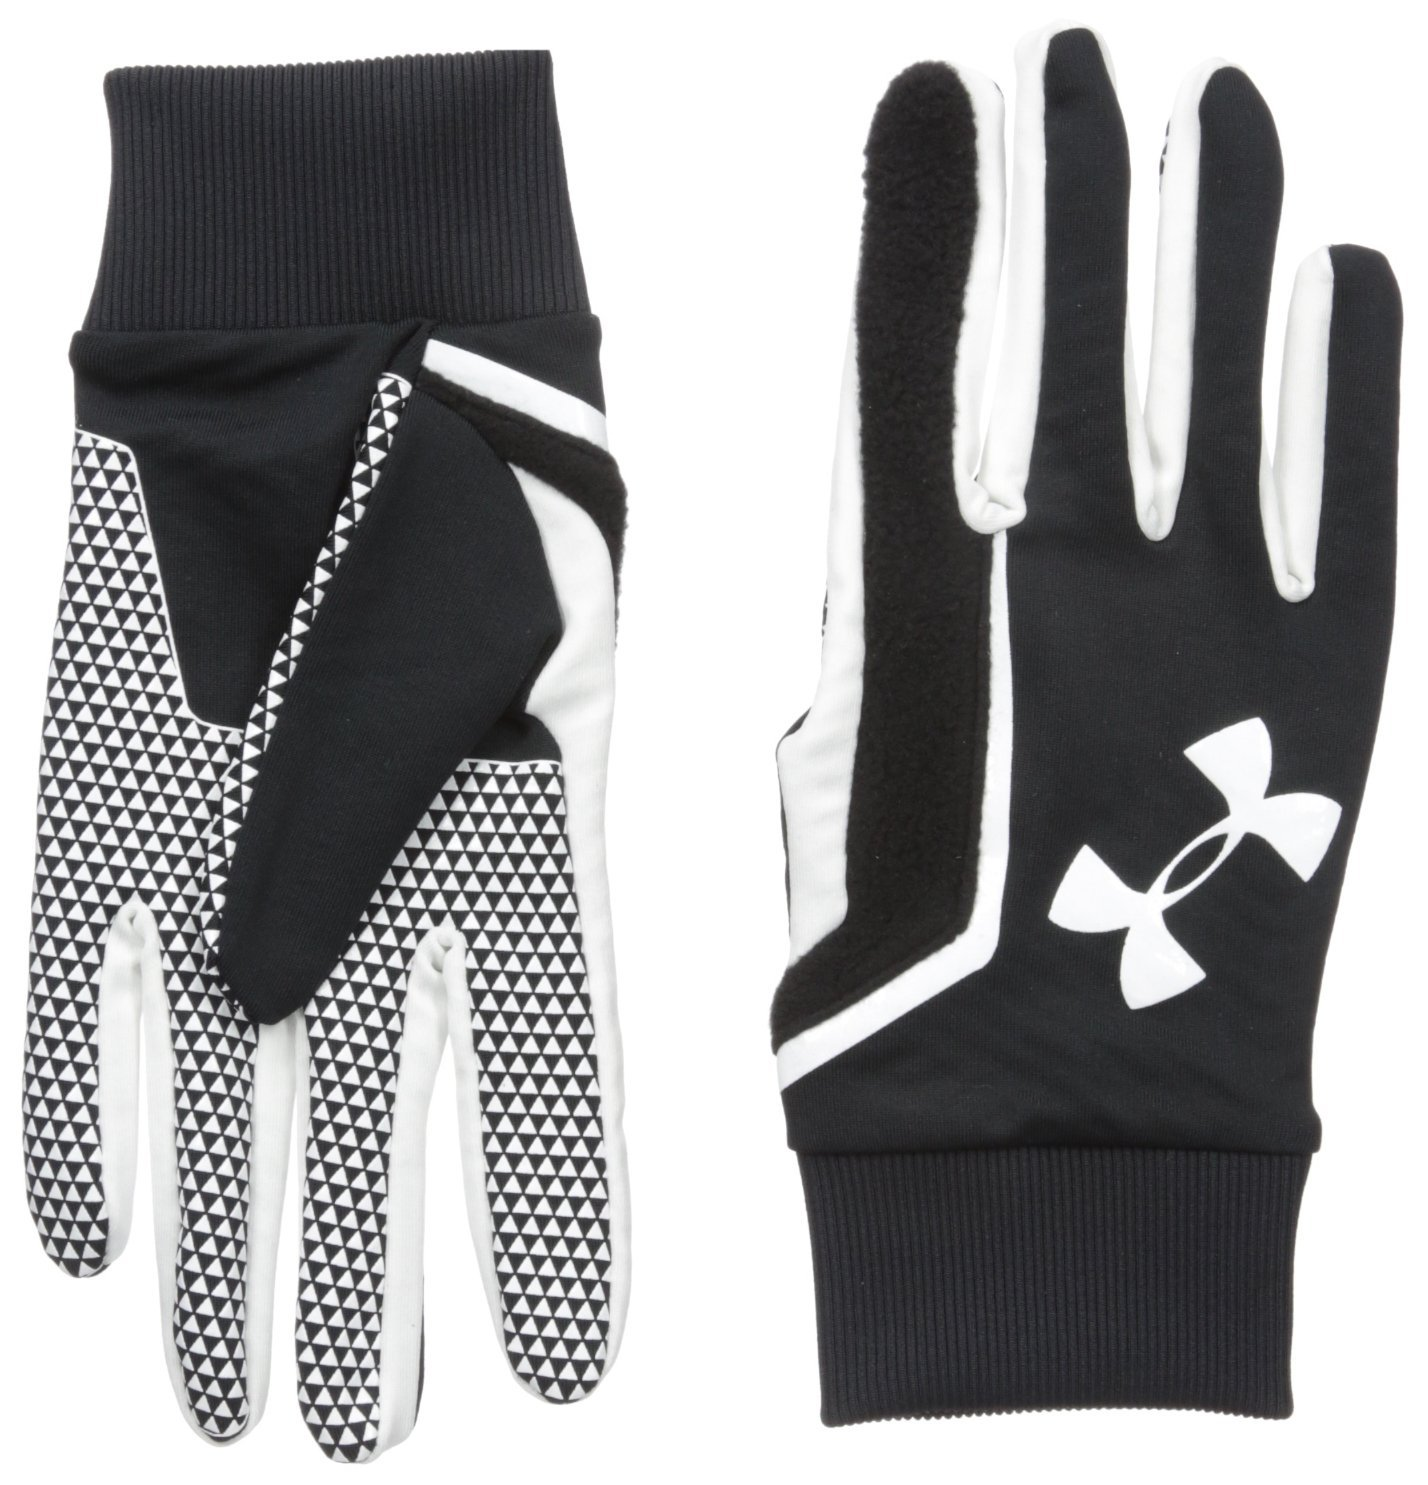 Under Armour Field Player Gloves